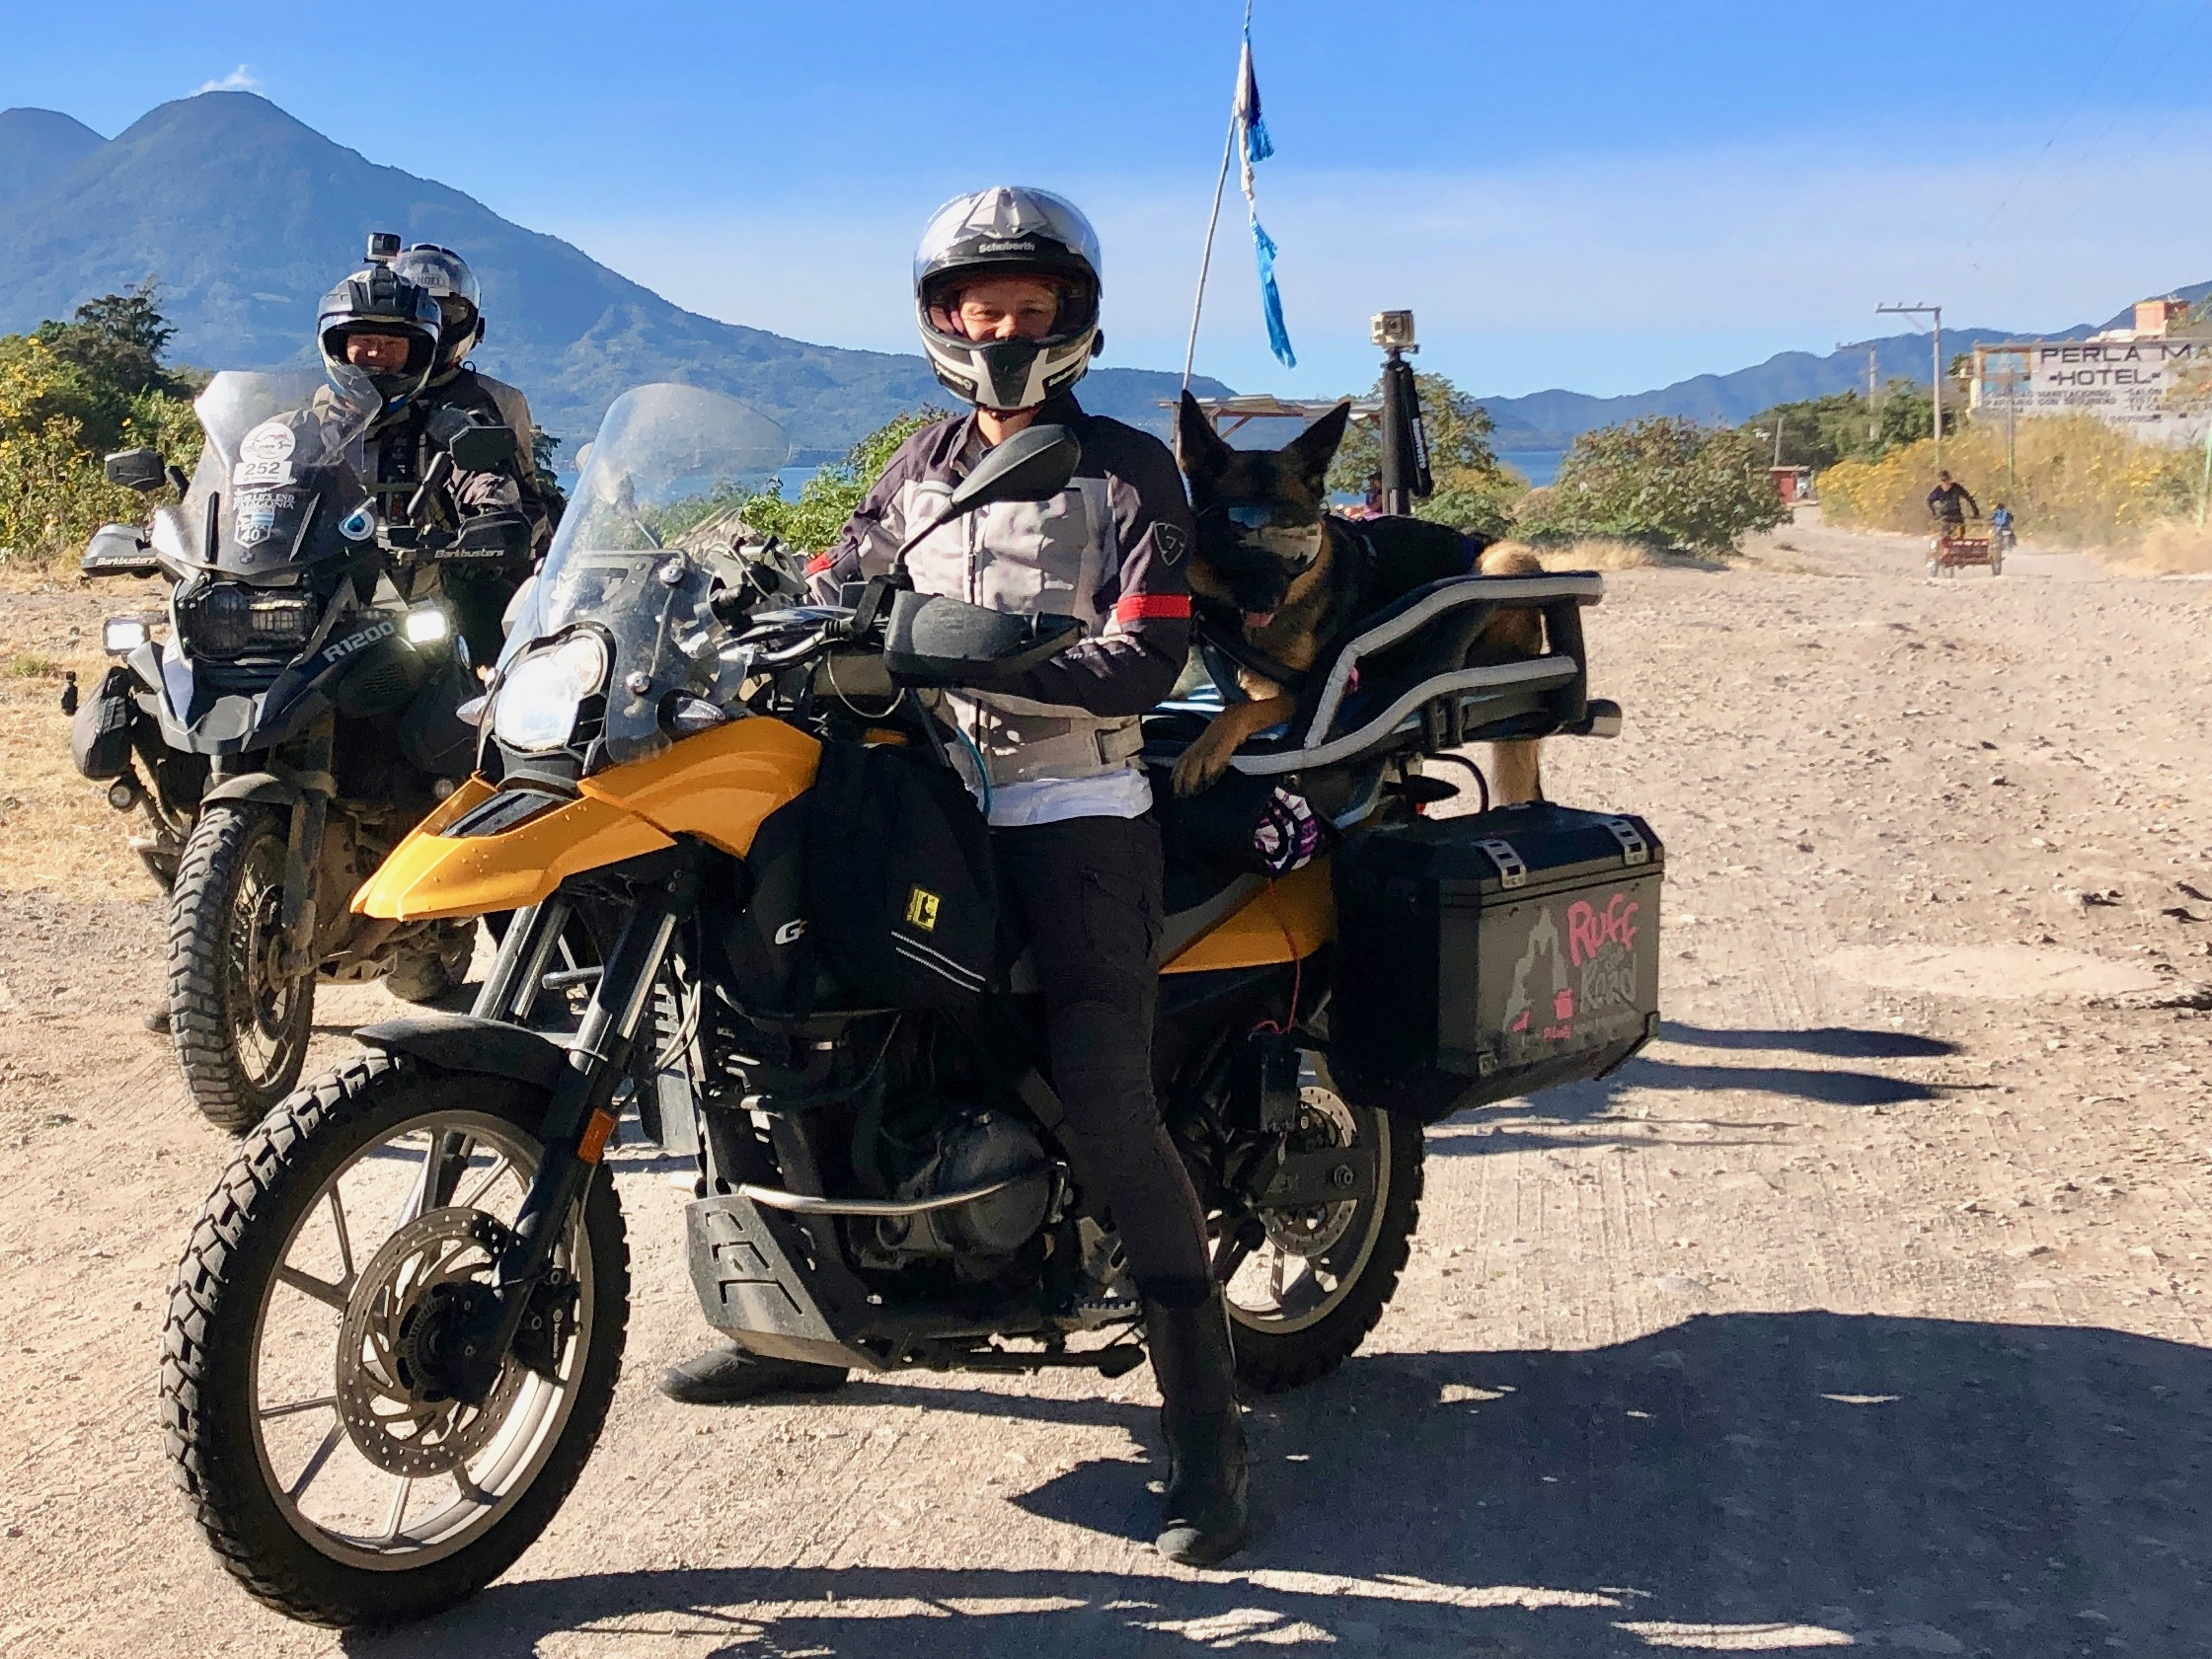 Jess-Greg-Stone-Ruff-on-the-Road-dog-adventure-rider-radio-motorcycle-podcast-6.jpg